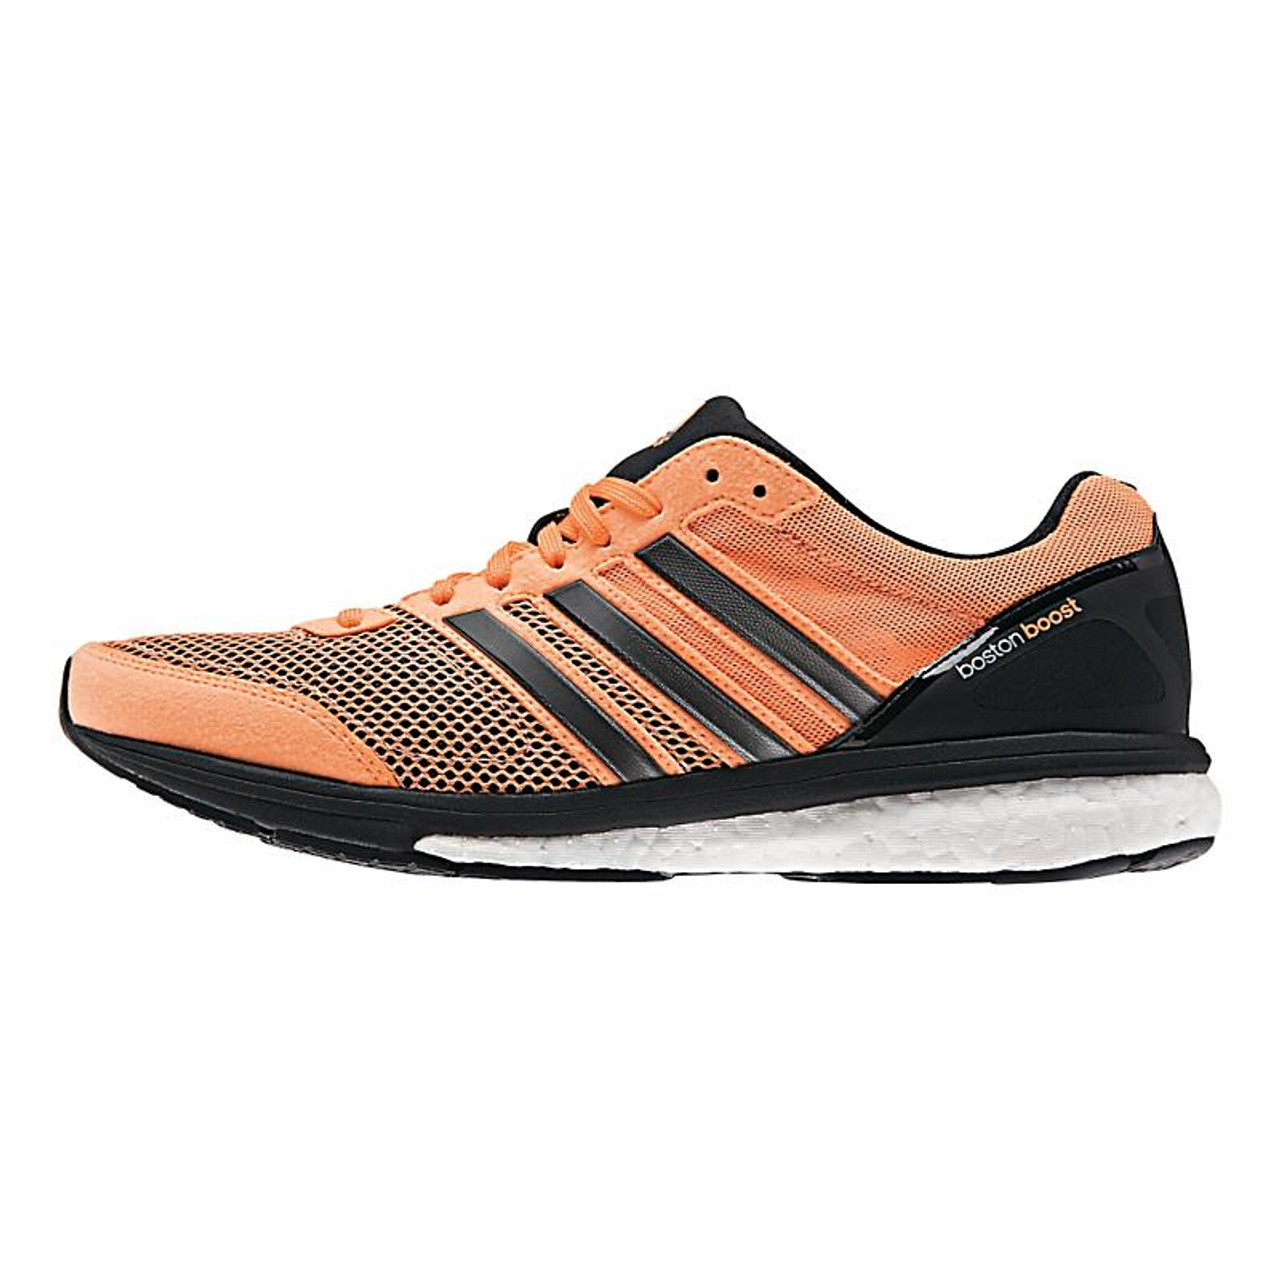 7983639830ad2 Women s adidas Adizero Boston 5 Boost Running Shoe